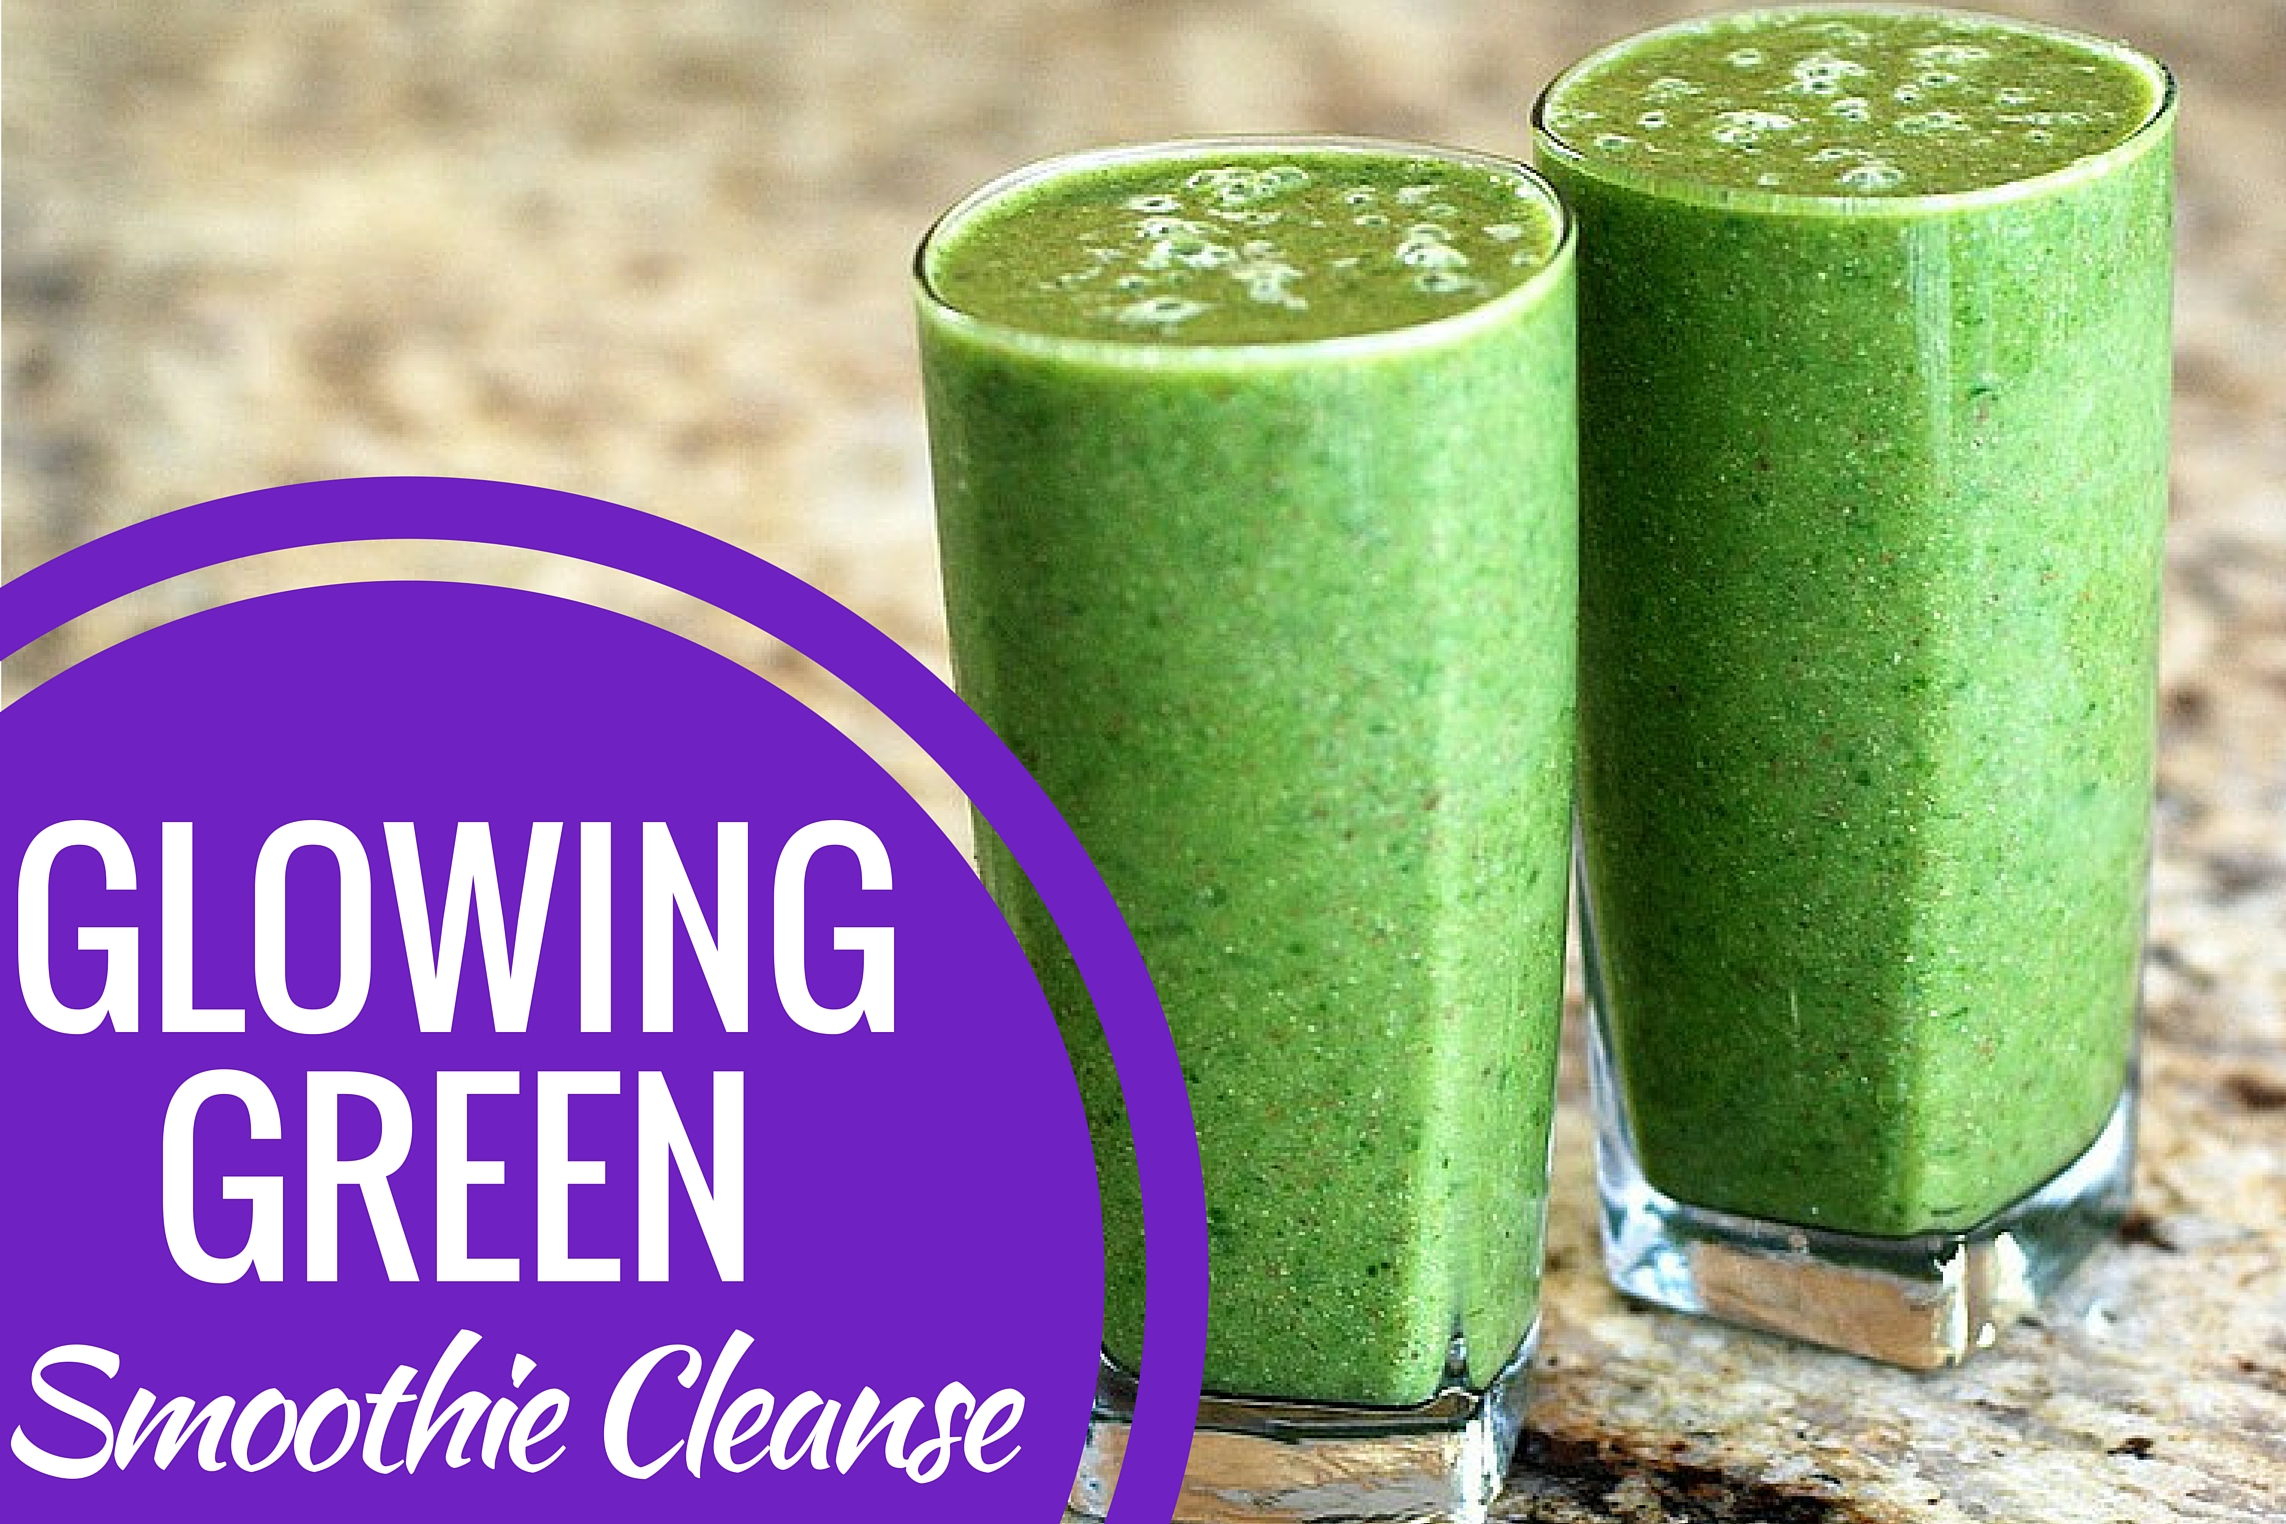 Glowing Green Smoothies